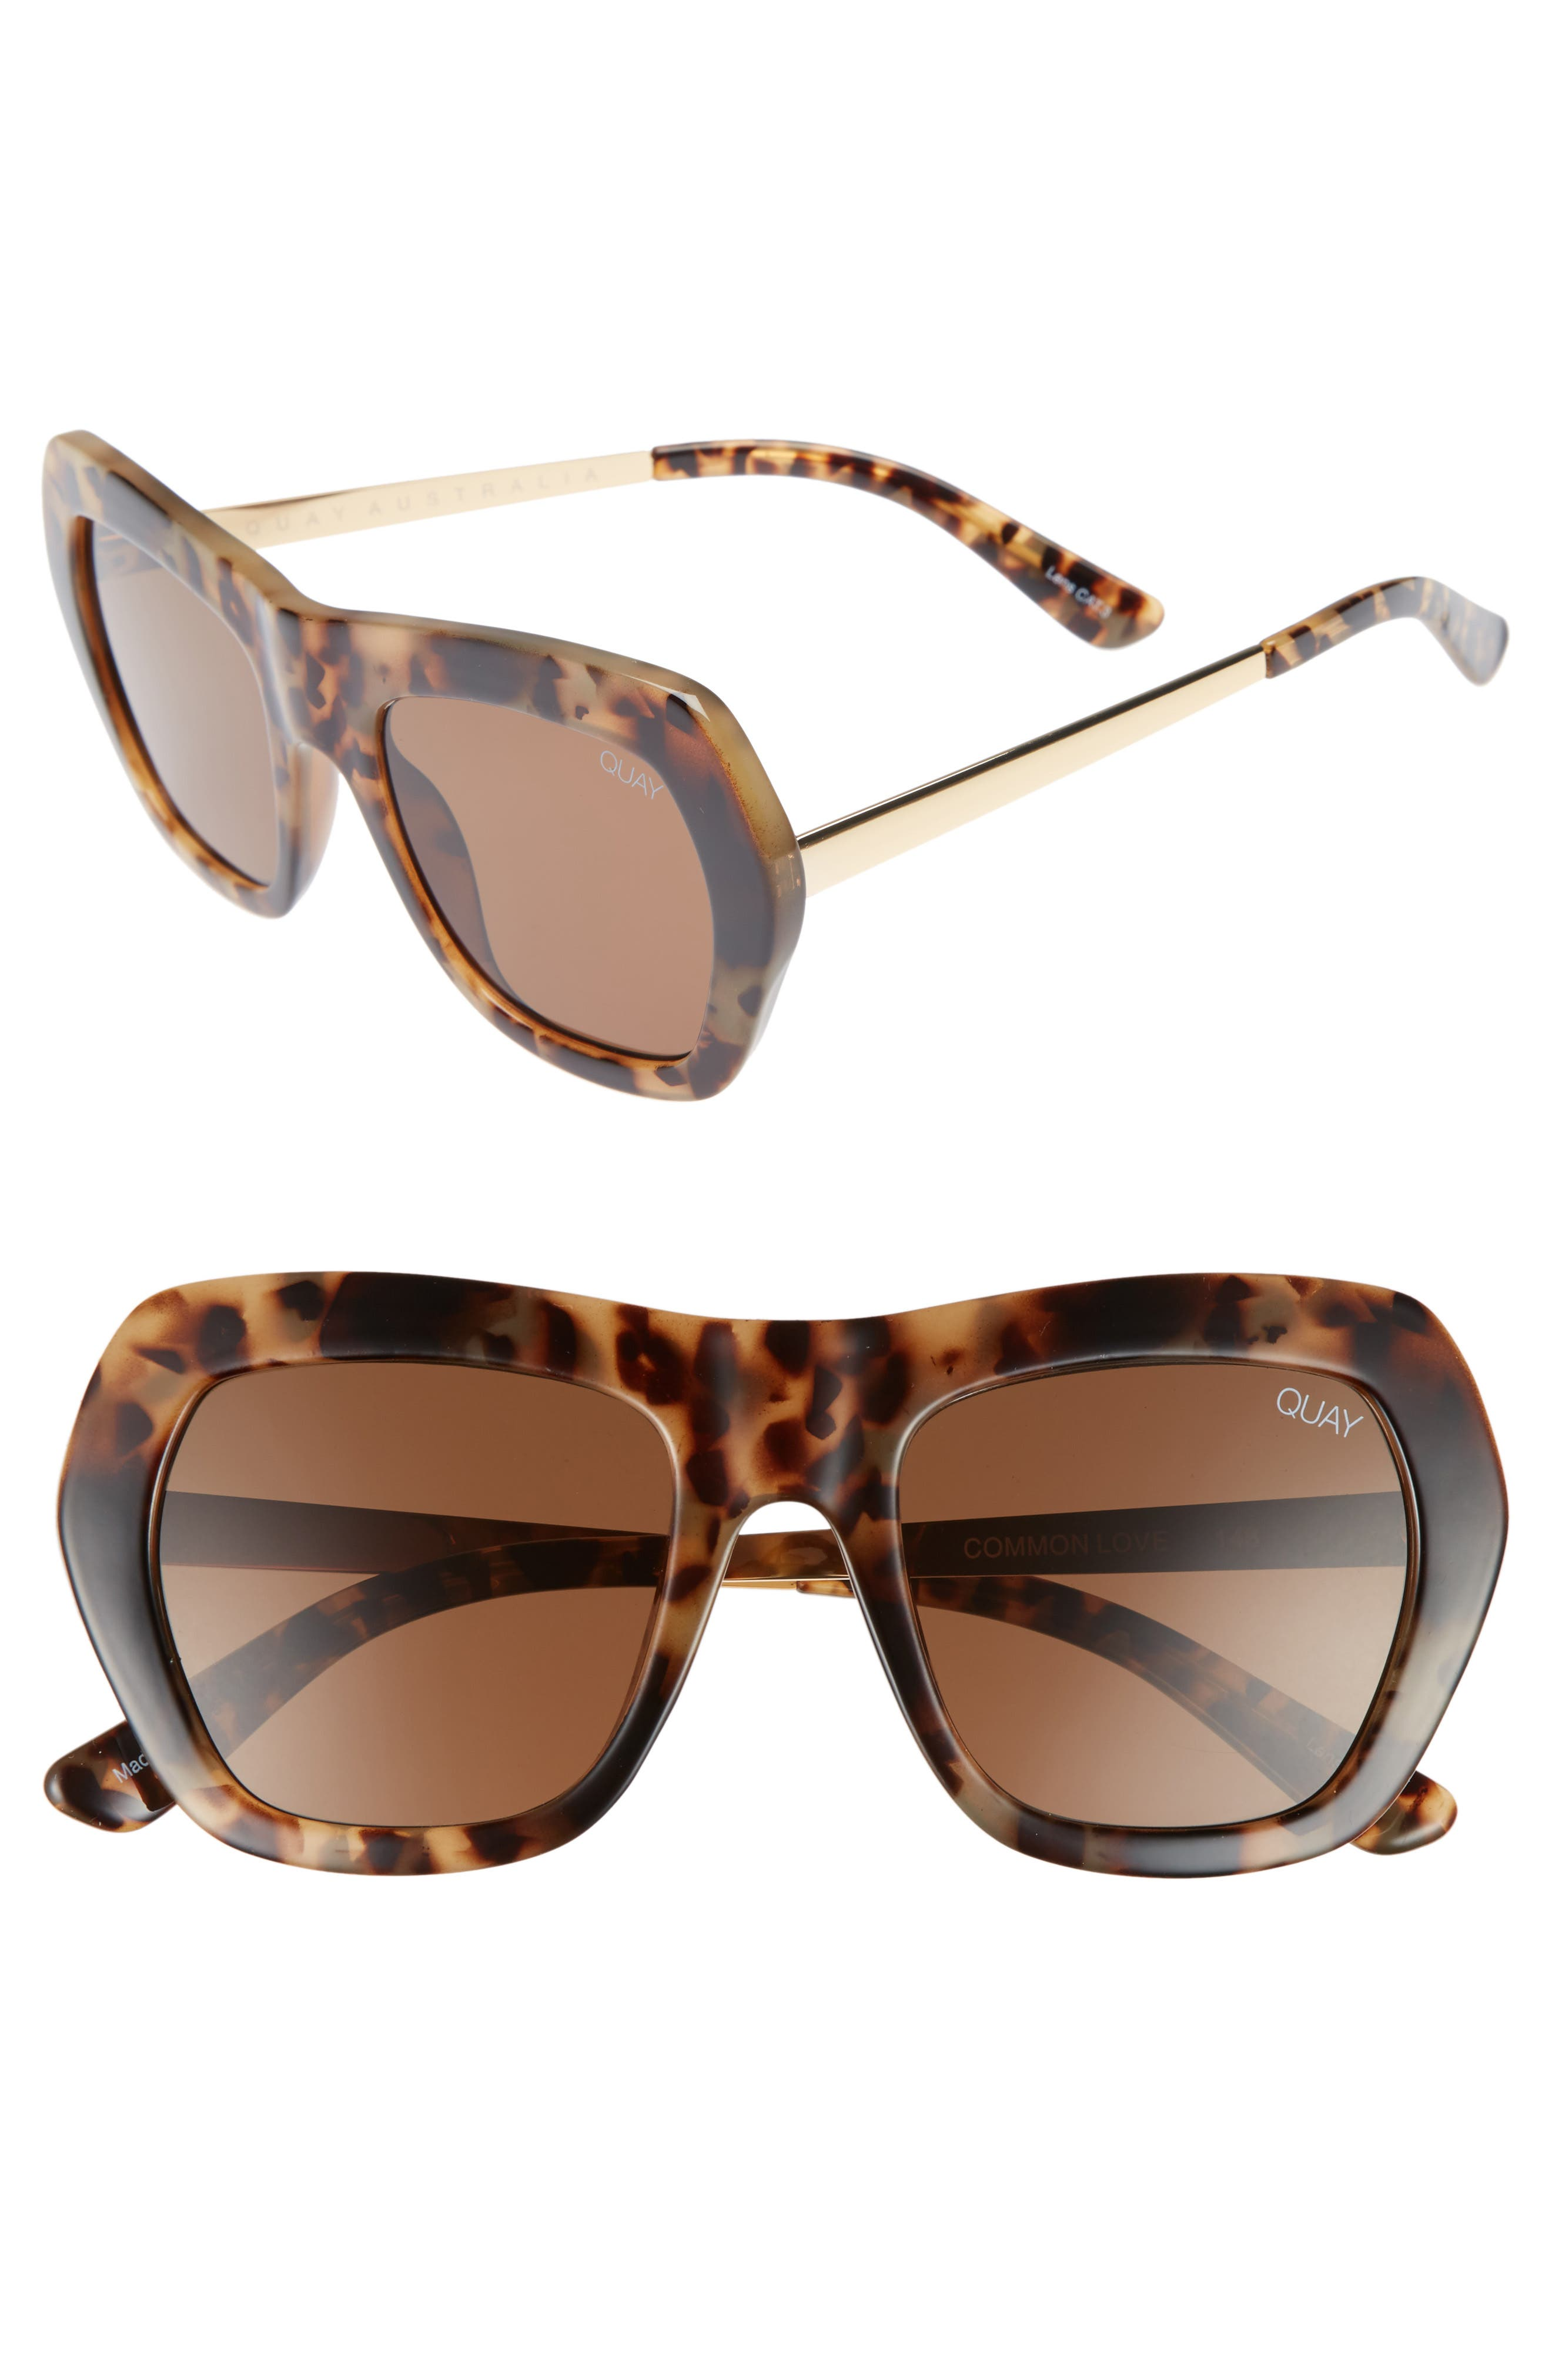 Common Love 53mm Square Sunglasses,                         Main,                         color, Tort/ Brown